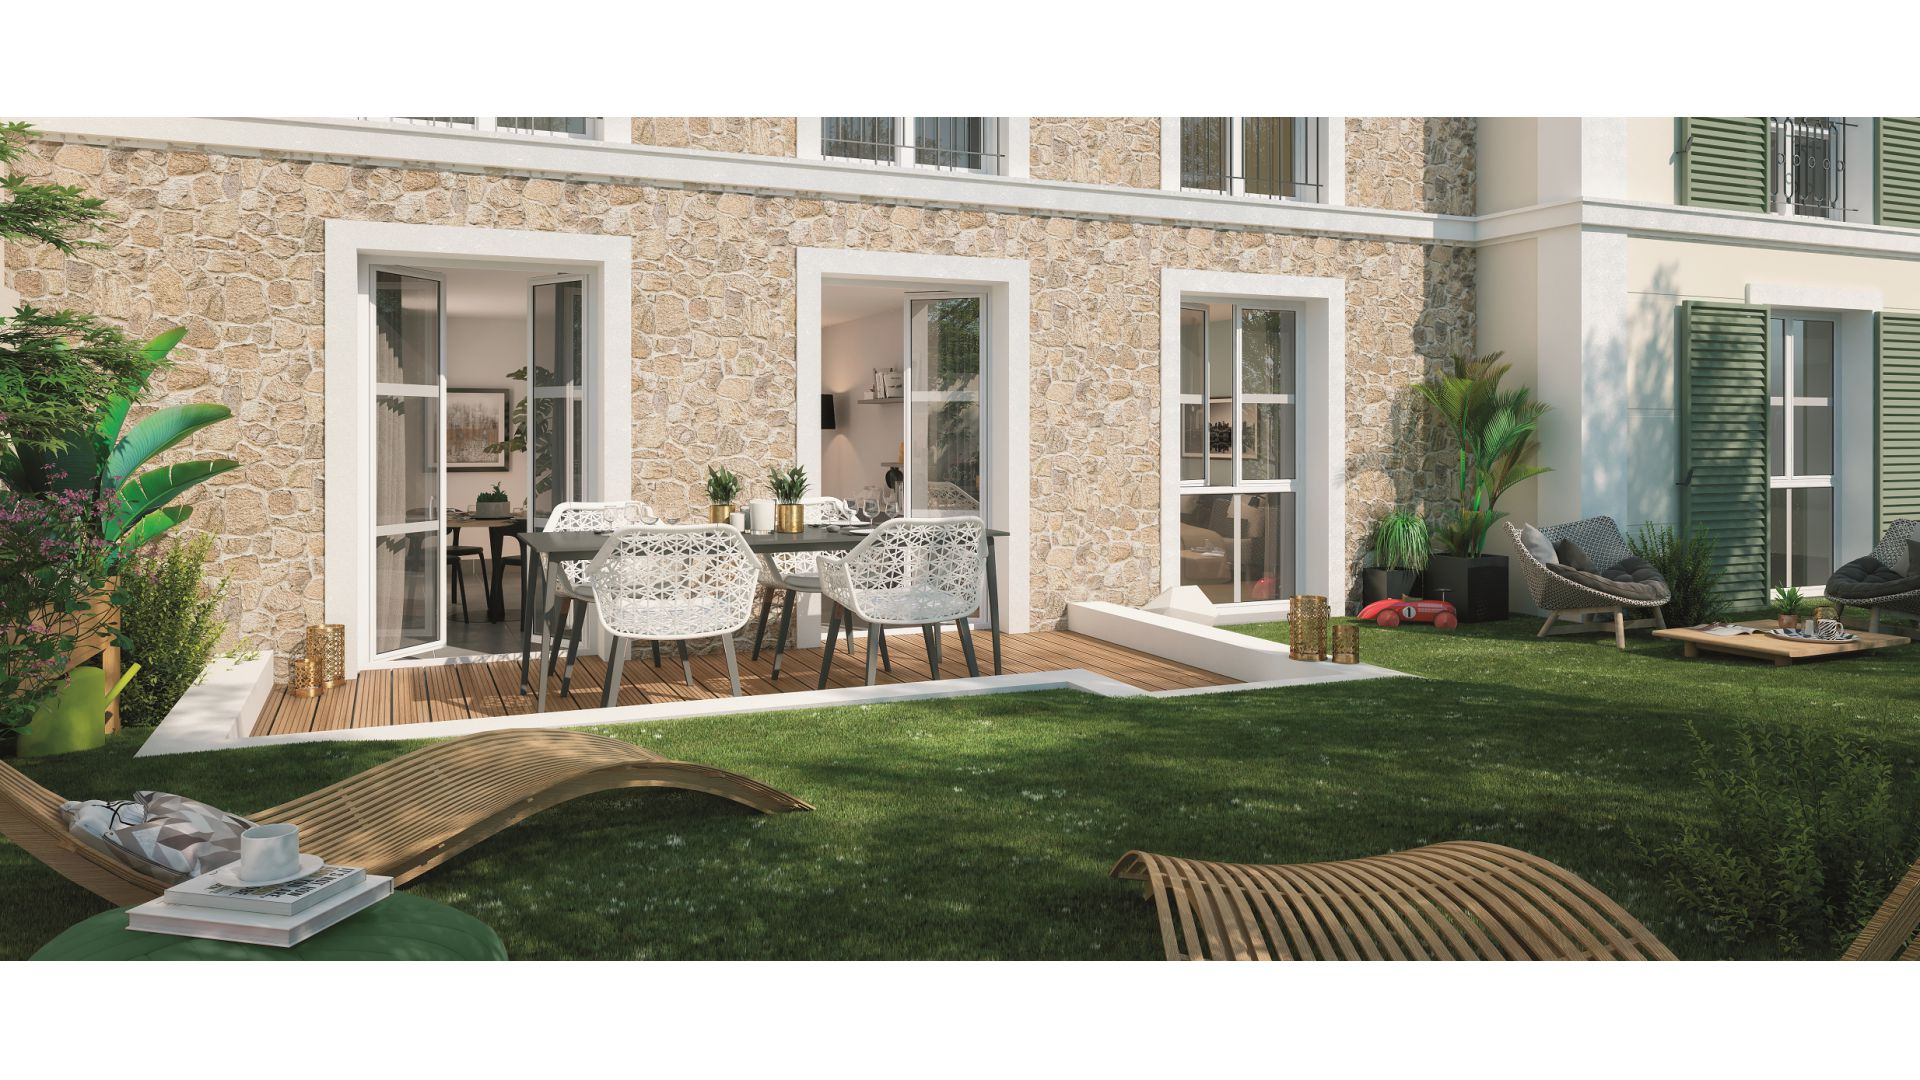 GreenCity immobilier - achat appartement neuf - Villiers Sur Marne - 94350 - Résidence Grand Angle - vue terrasse